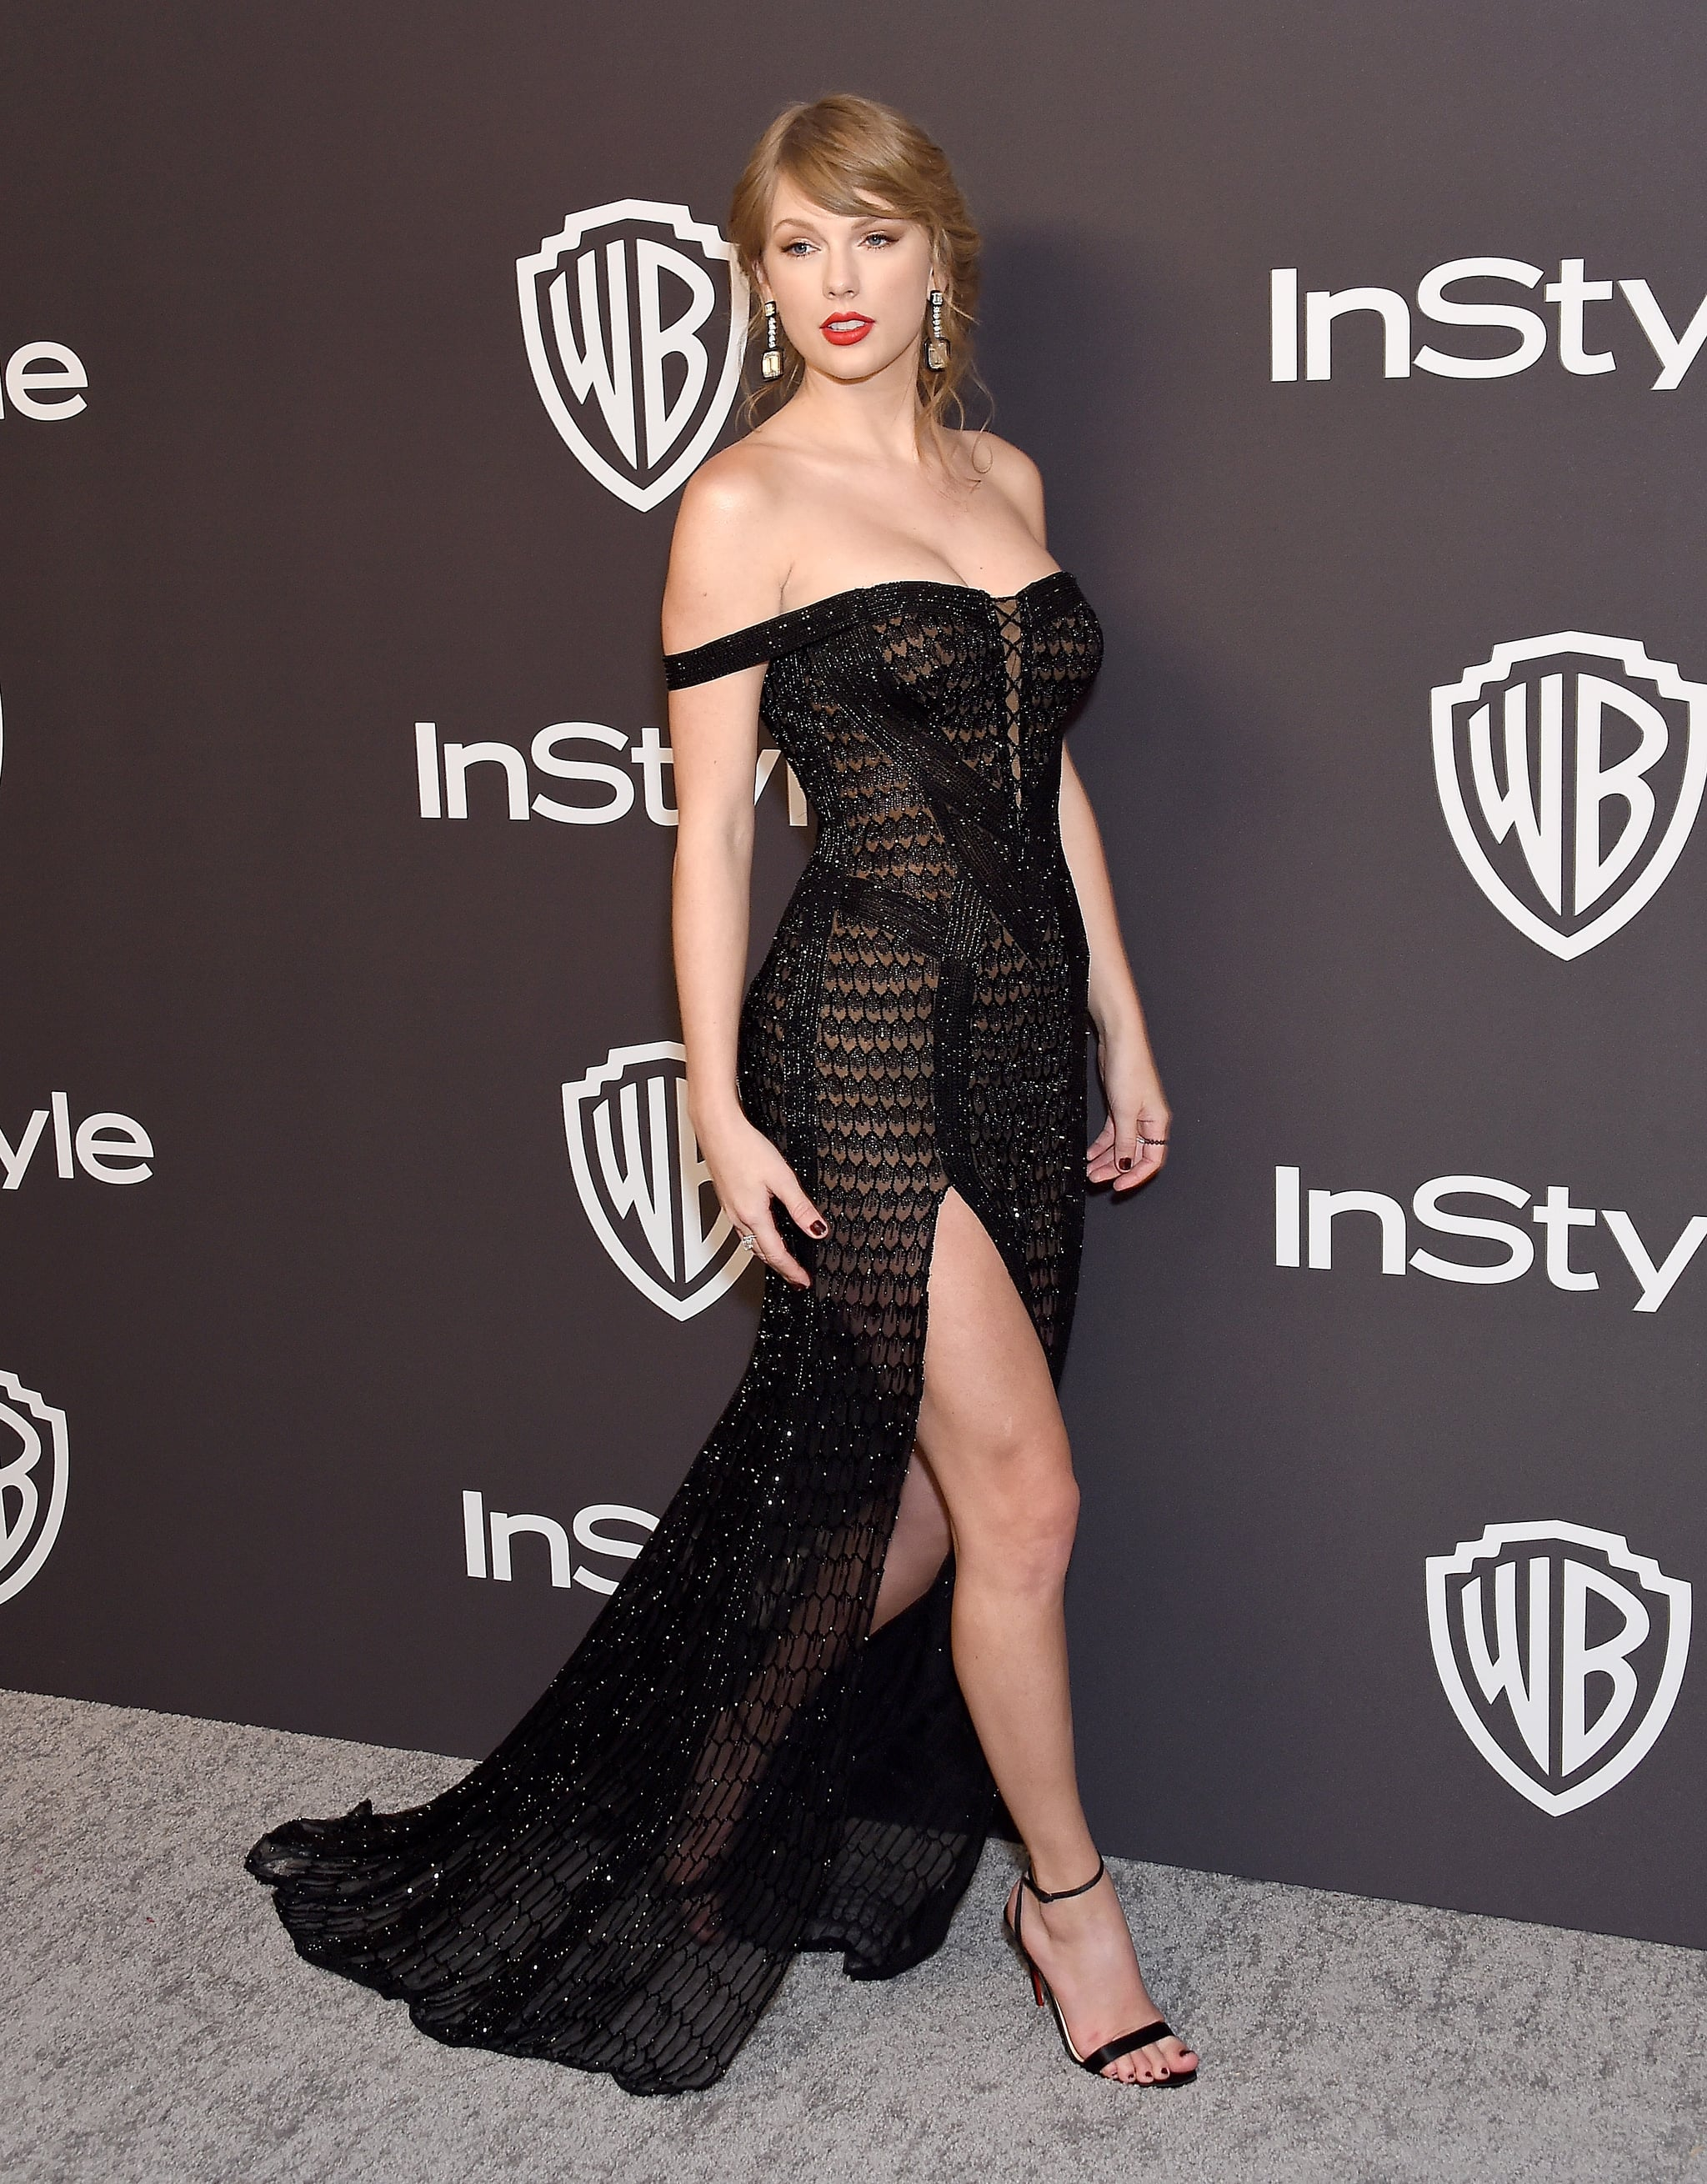 BEVERLY HILLS, CA - JANUARY 06:  Taylor Swift attends the InStyle And Warner Bros. Golden Globes After Party 2019 at The Beverly Hilton Hotel on January 6, 2019 in Beverly Hills, California.  (Photo by Gregg DeGuire/WireImage)